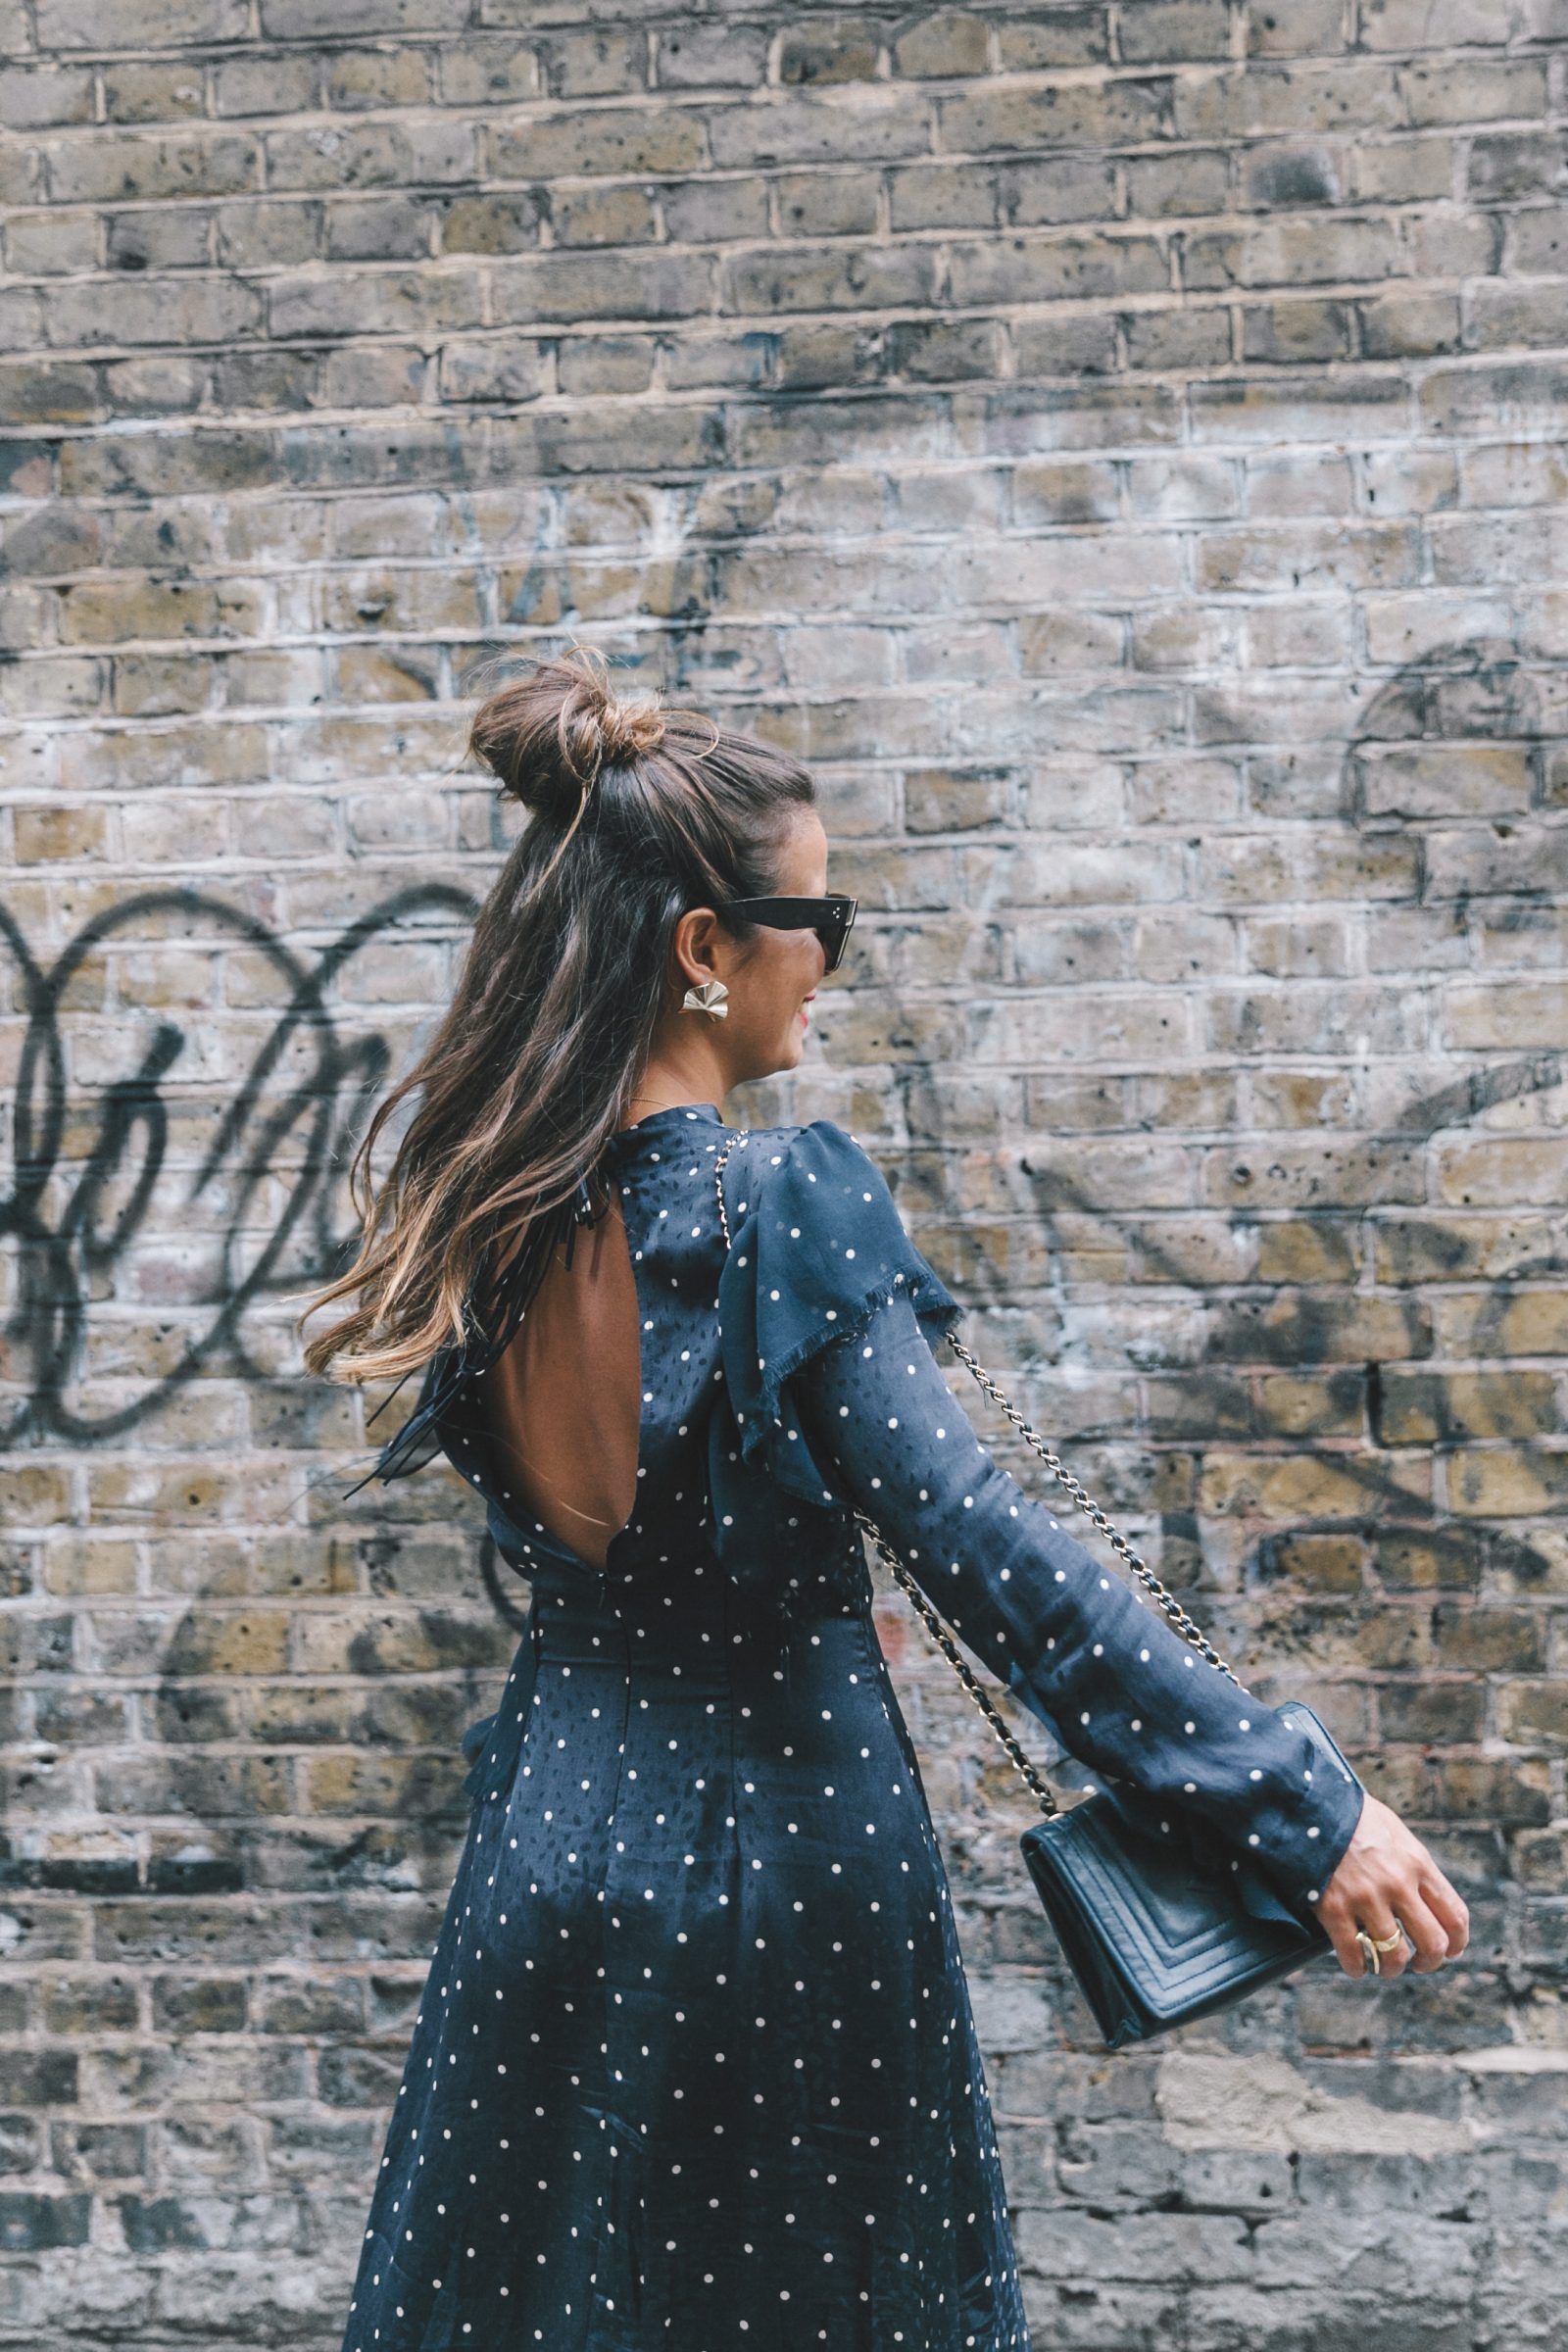 lfw-london_fashion_week_ss17-street_style-outfits-collage_vintage-vintage-topshop_unique-polka_dot_dress-white_mules-topshop_boutique-adenorah-5